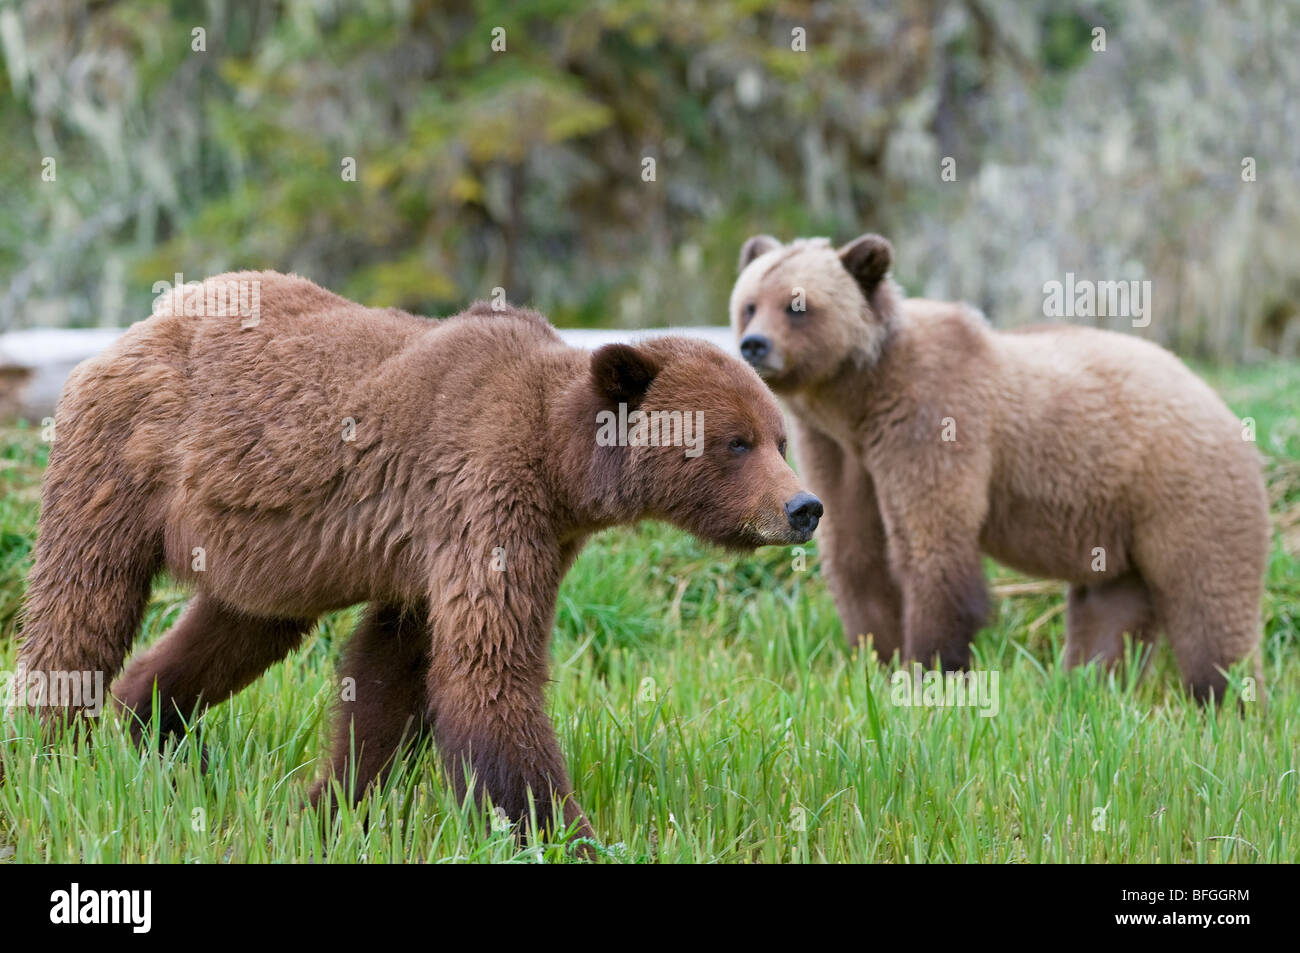 Male and female Grizzly Bear (Ursus arctos horribilis) during mating season at Khutzeymateen Grizzly Bear Sanctuary - Stock Image